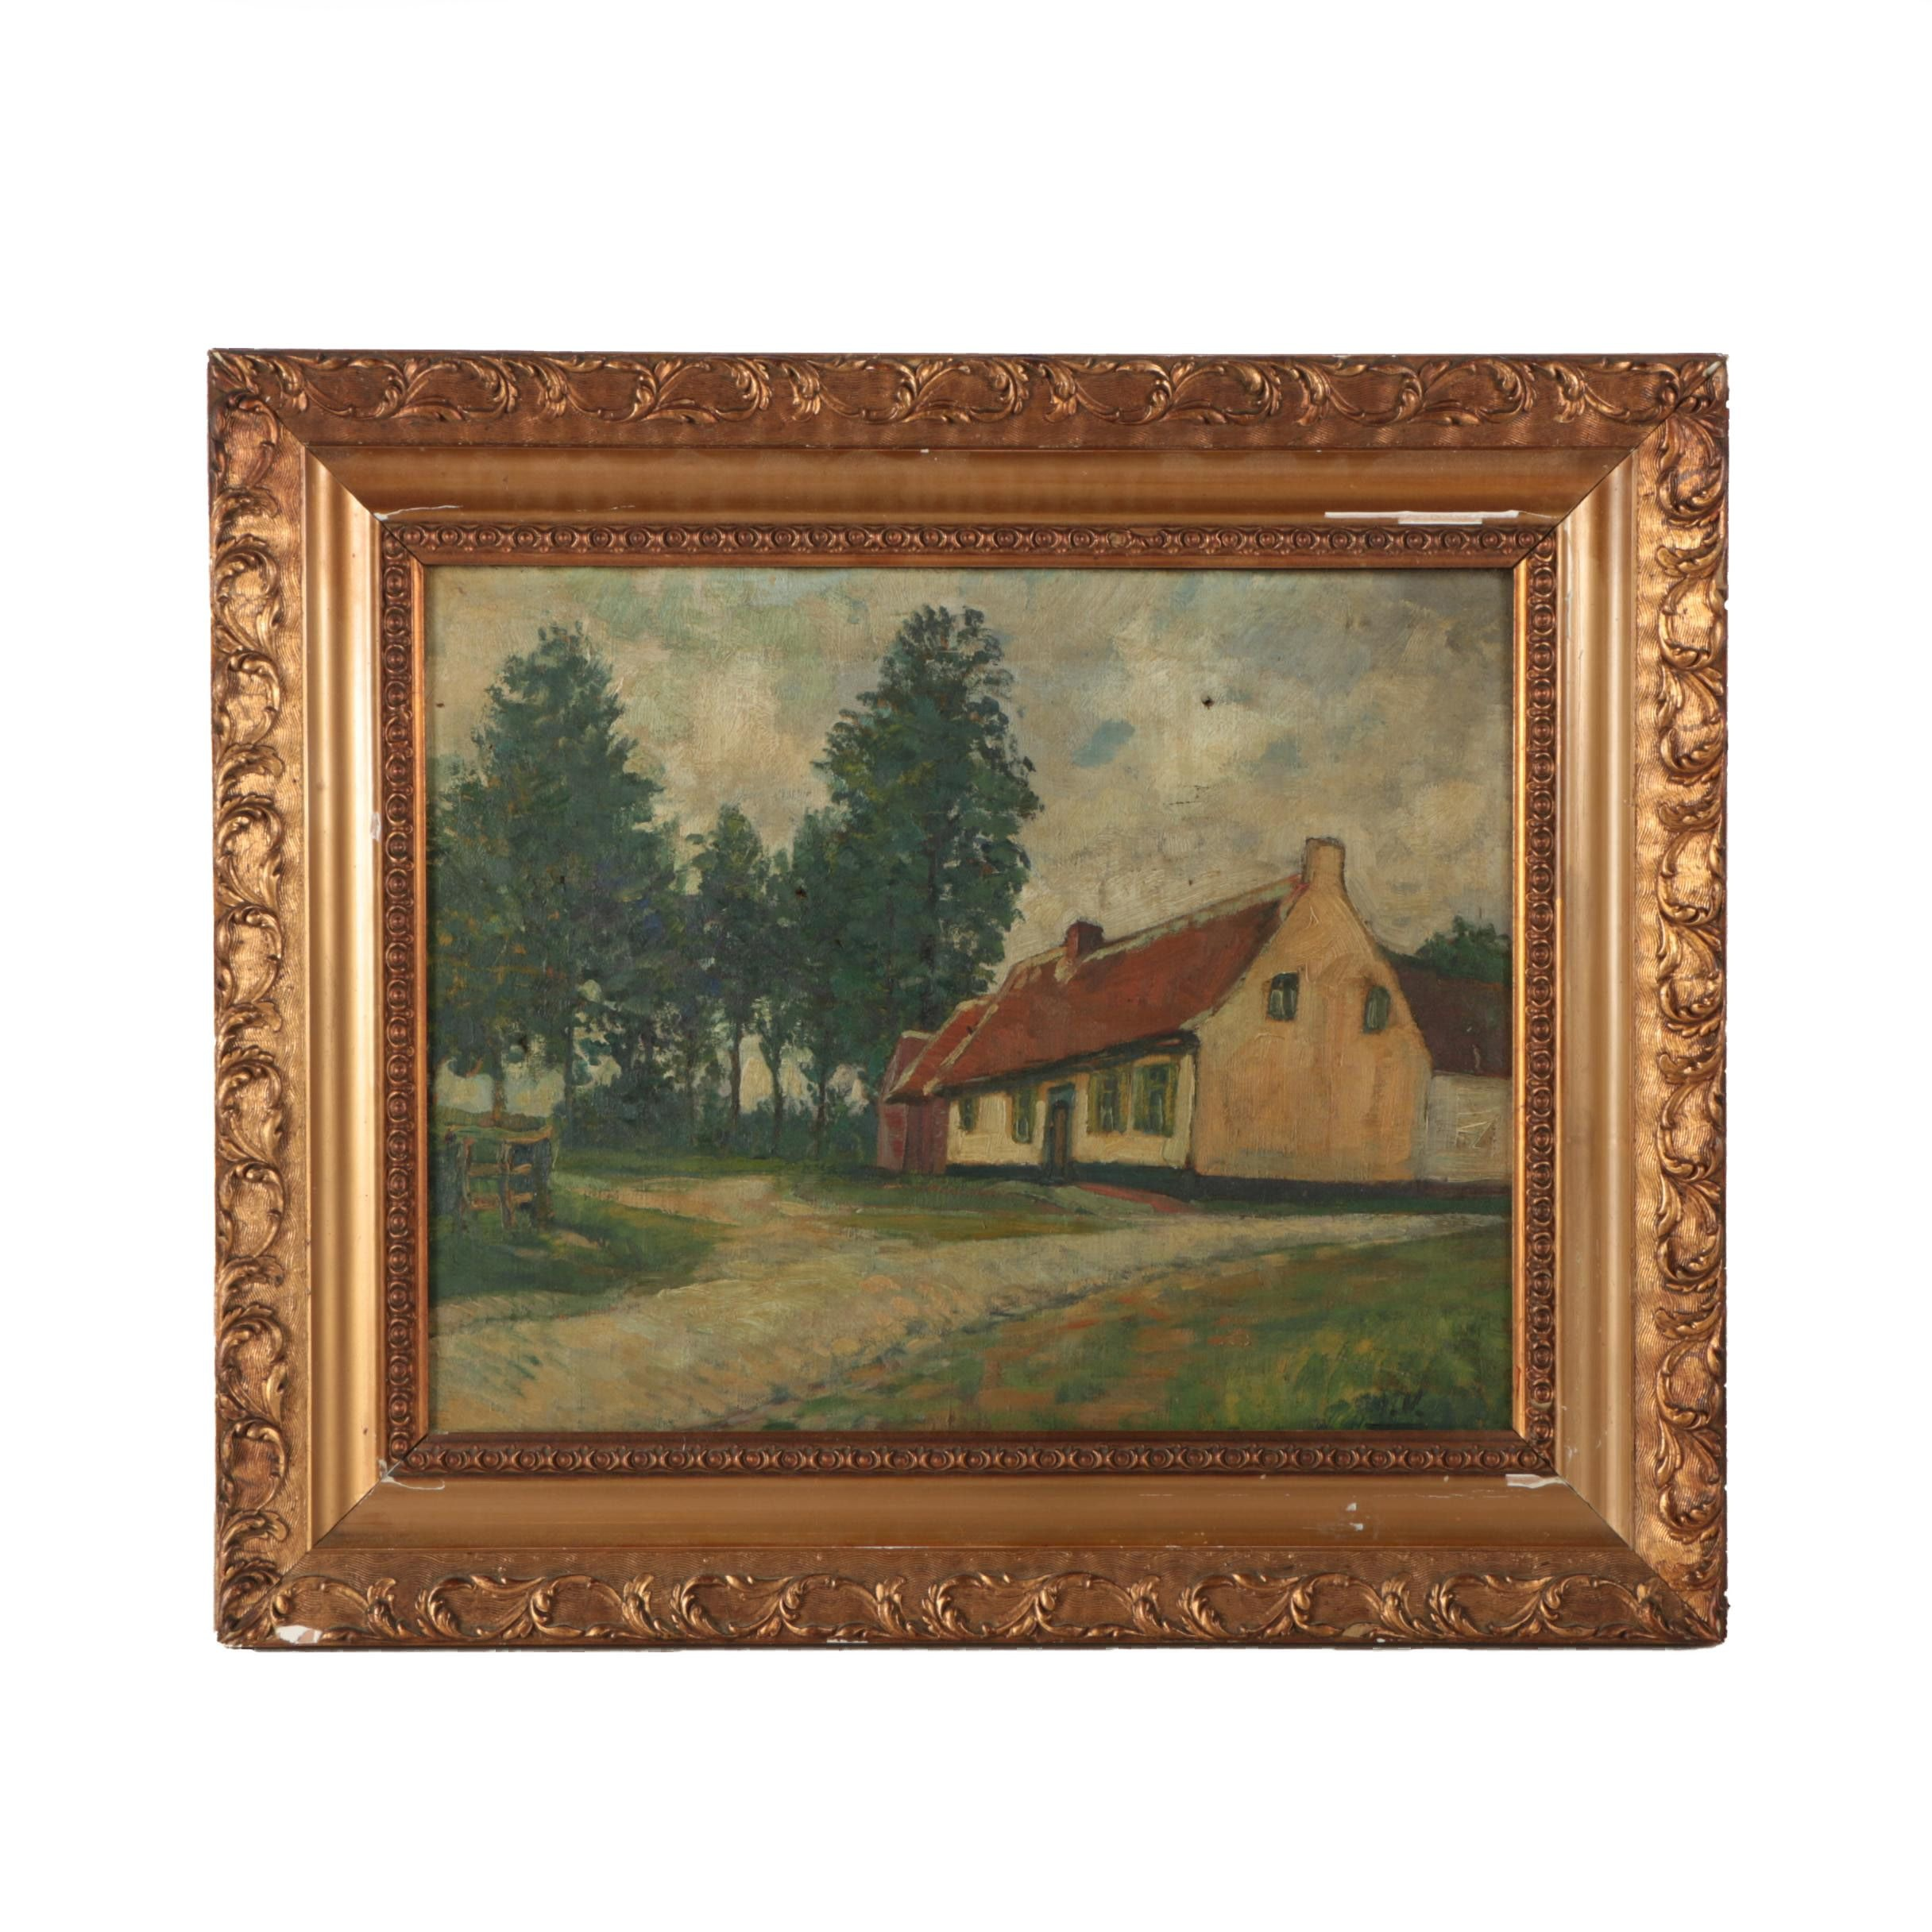 Original Oil Painting on Canvas of a Rural Landscape